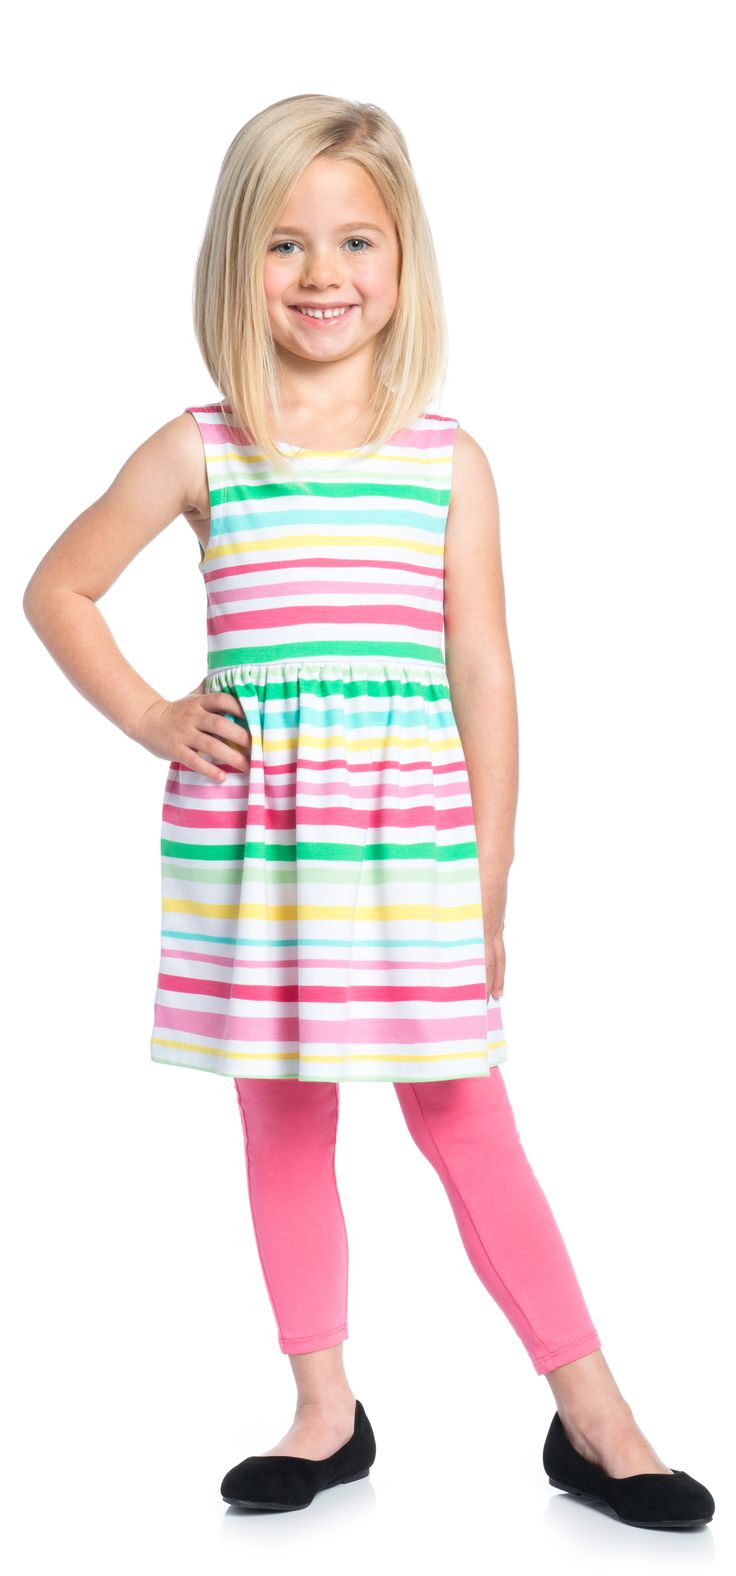 Pretty in Stripes Outfit  - PIN TO WIN! Enter the February Fresh Pinterest Contest for a chance to win a brand-new FabKids wardrobe! Ends 2/19#FabKidsFebFresh @FabKids